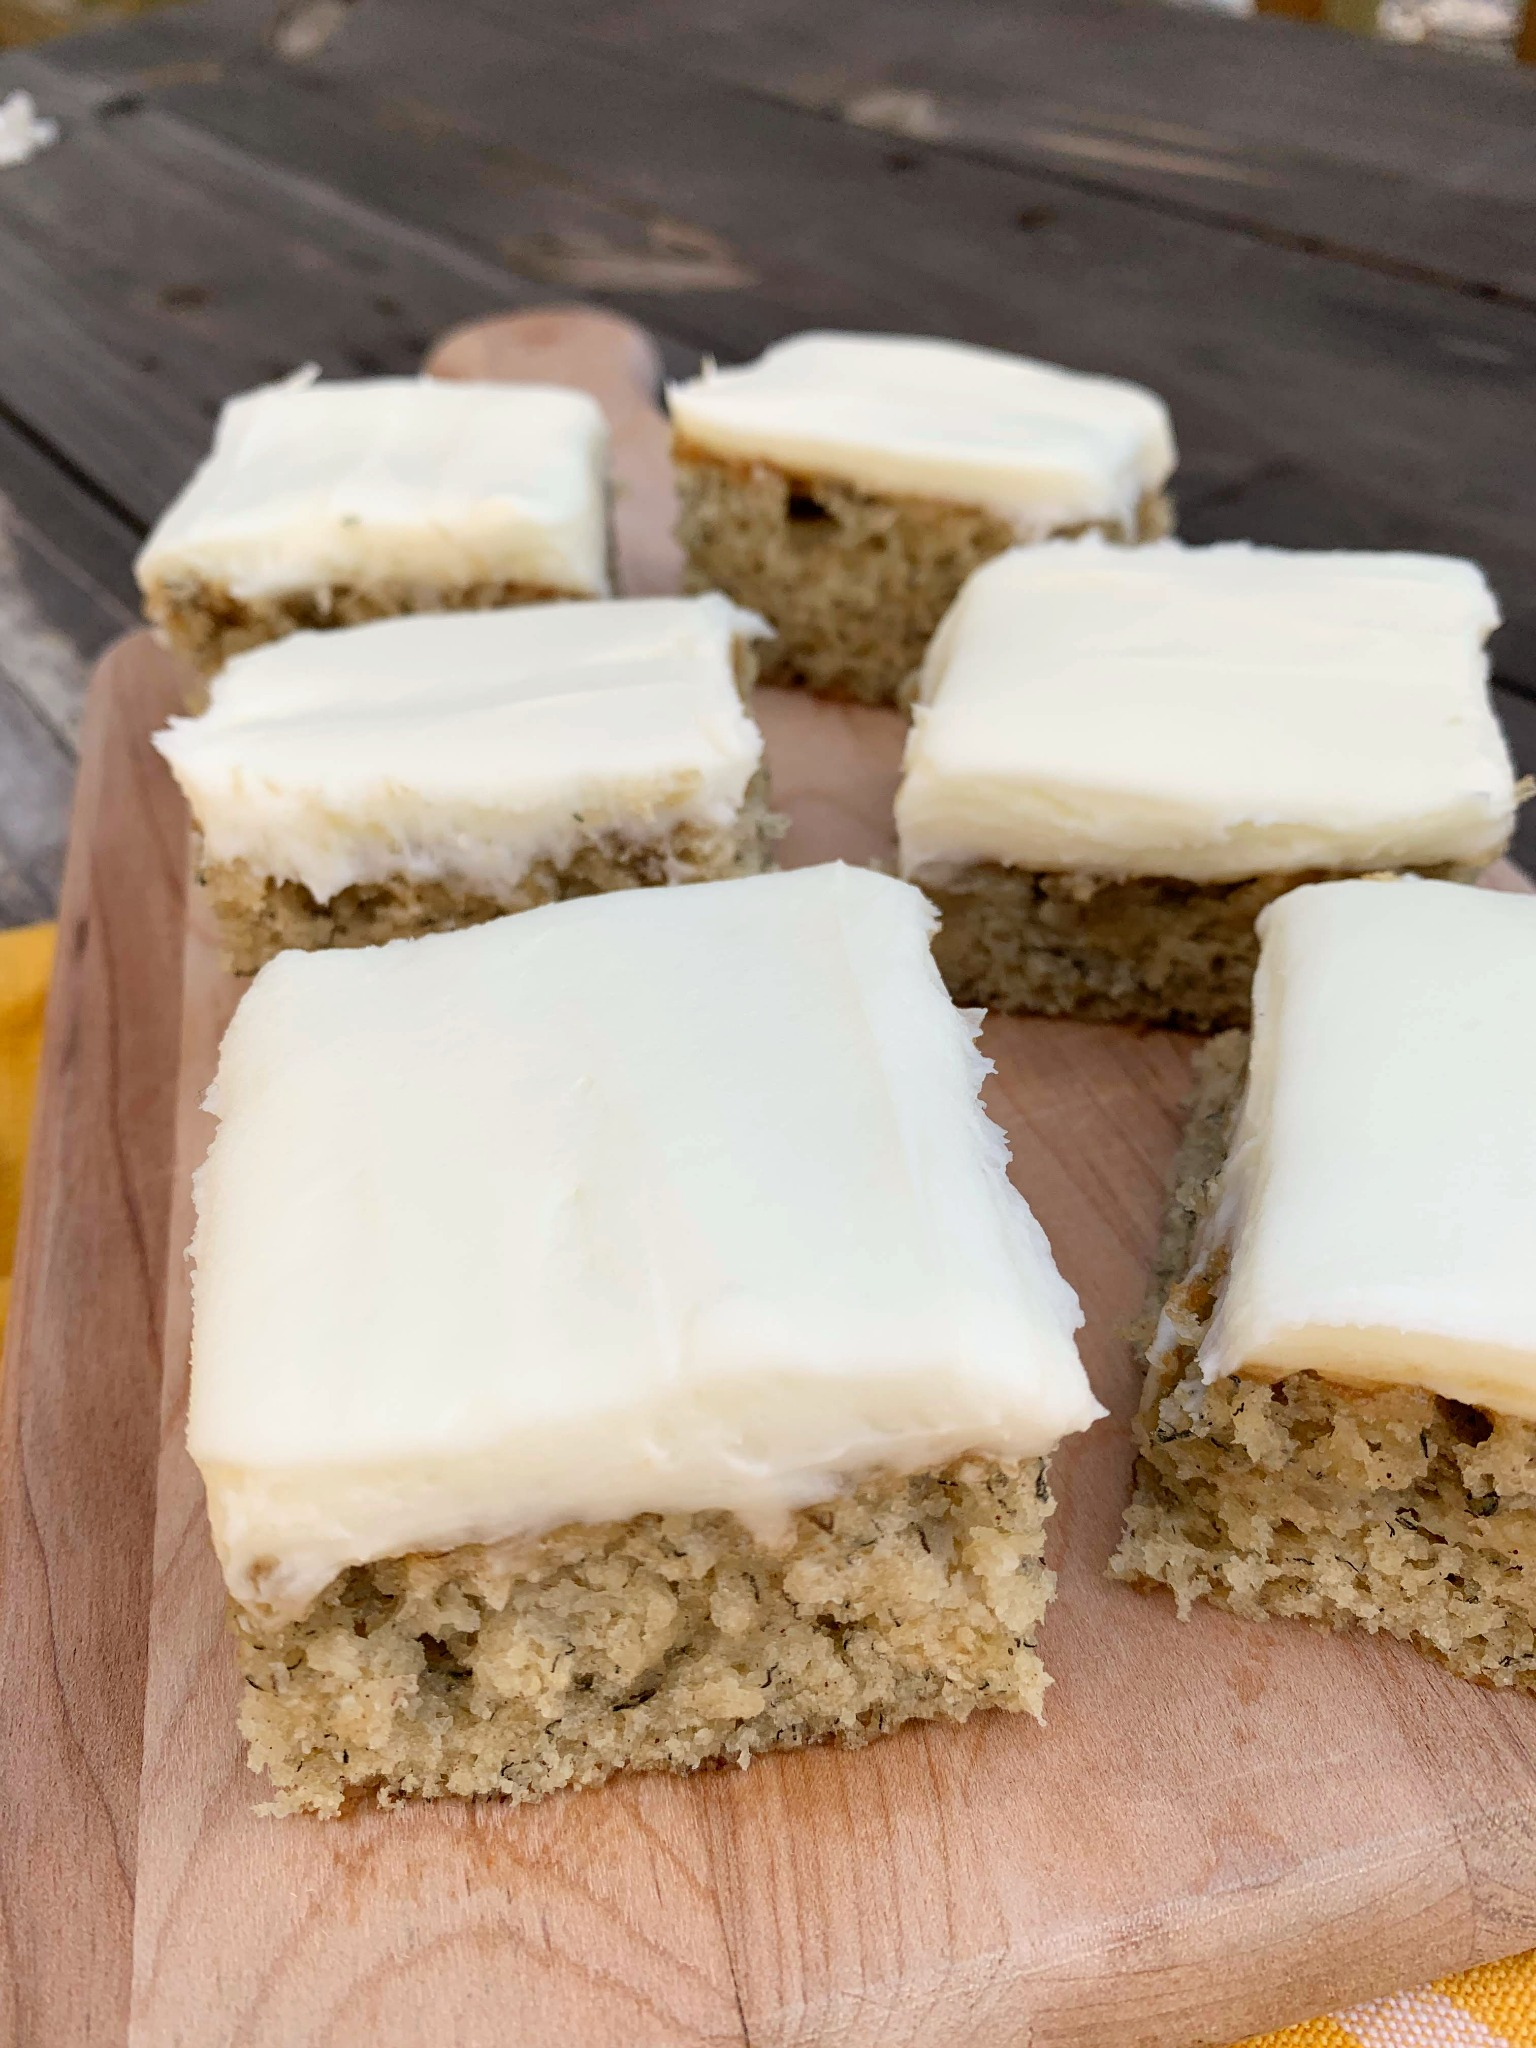 a wooden cutting board with slices of banana sheet cake with cream cheese frosting